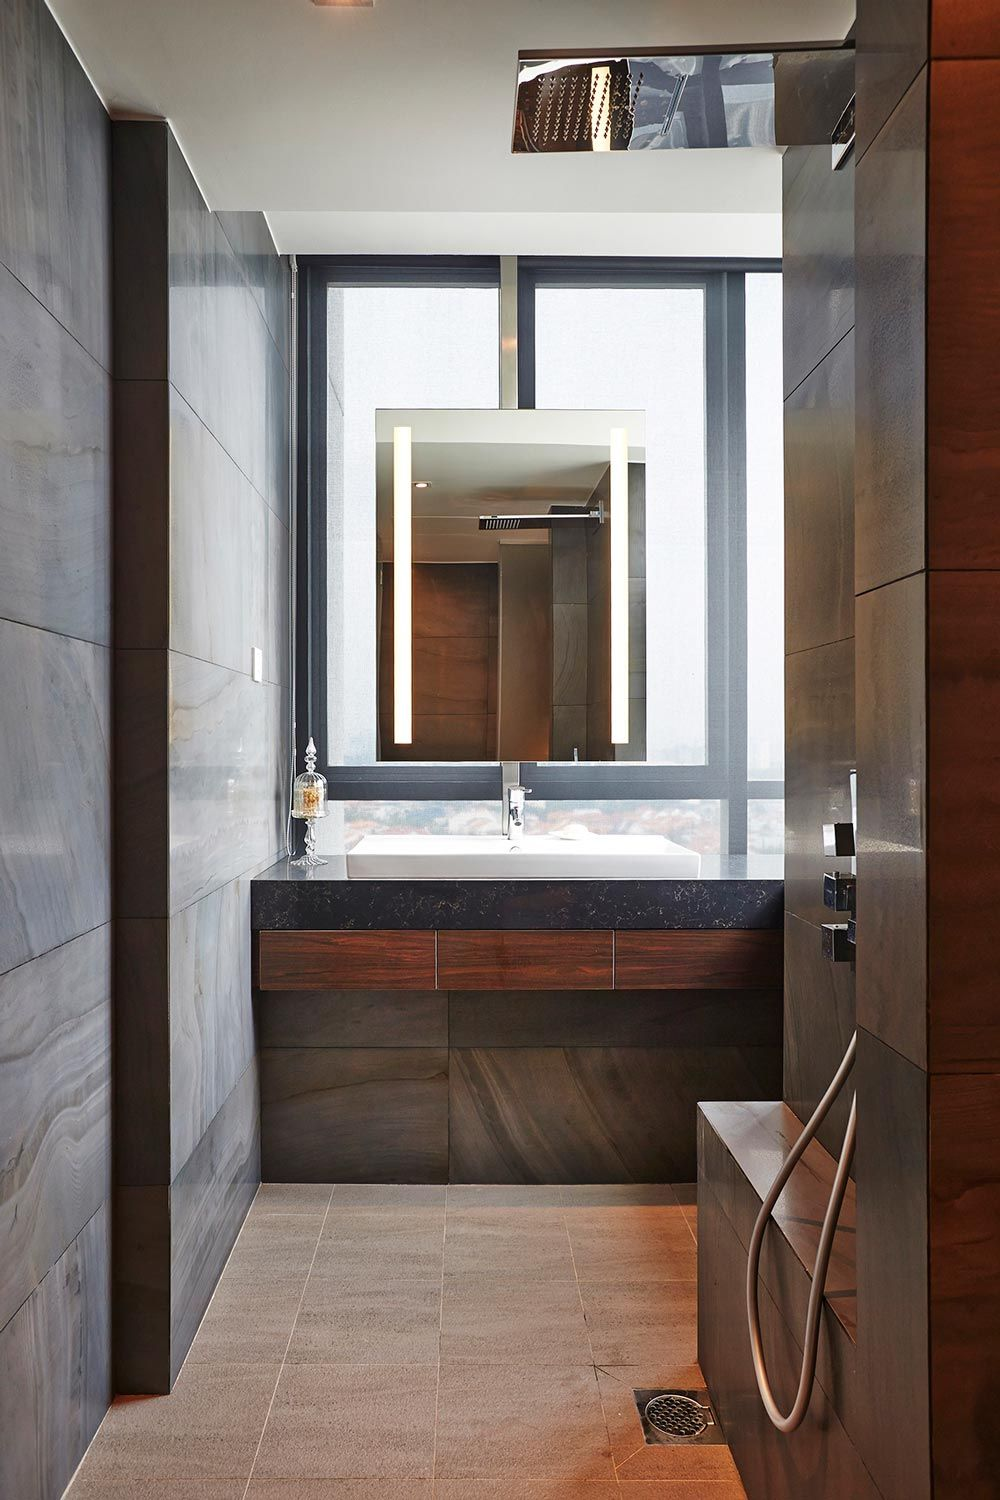 A Resort Style Bathroom With Wood Laminates And Stone Like Tiles Interior Design Toilet Bathroom Styling Lighted Bathroom Mirror